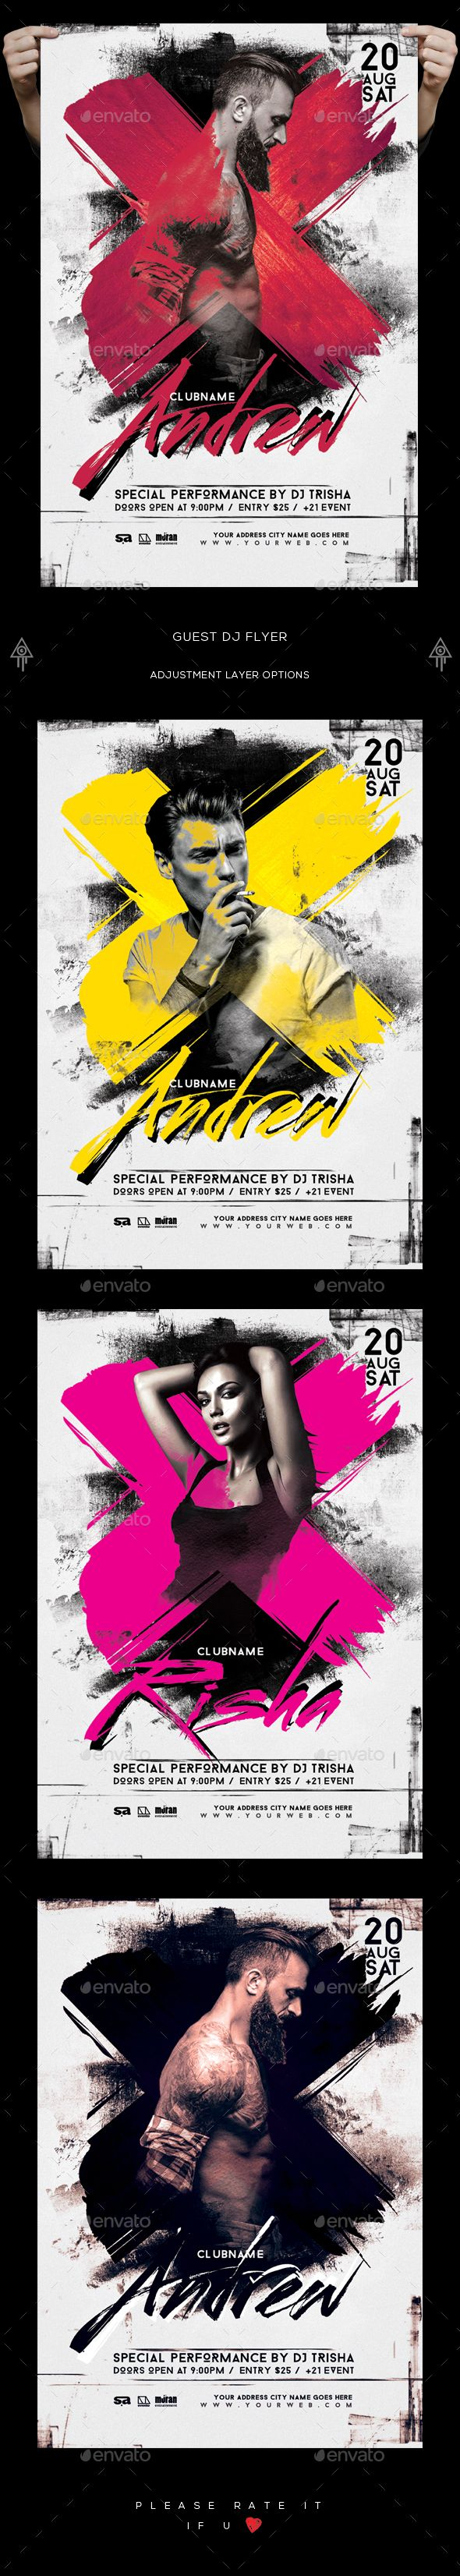 Dj Flyer — Photoshop PSD #special guest dj #concert • Available here → https://graphicriver.net/item/dj-flyer/18348024?ref=pxcr